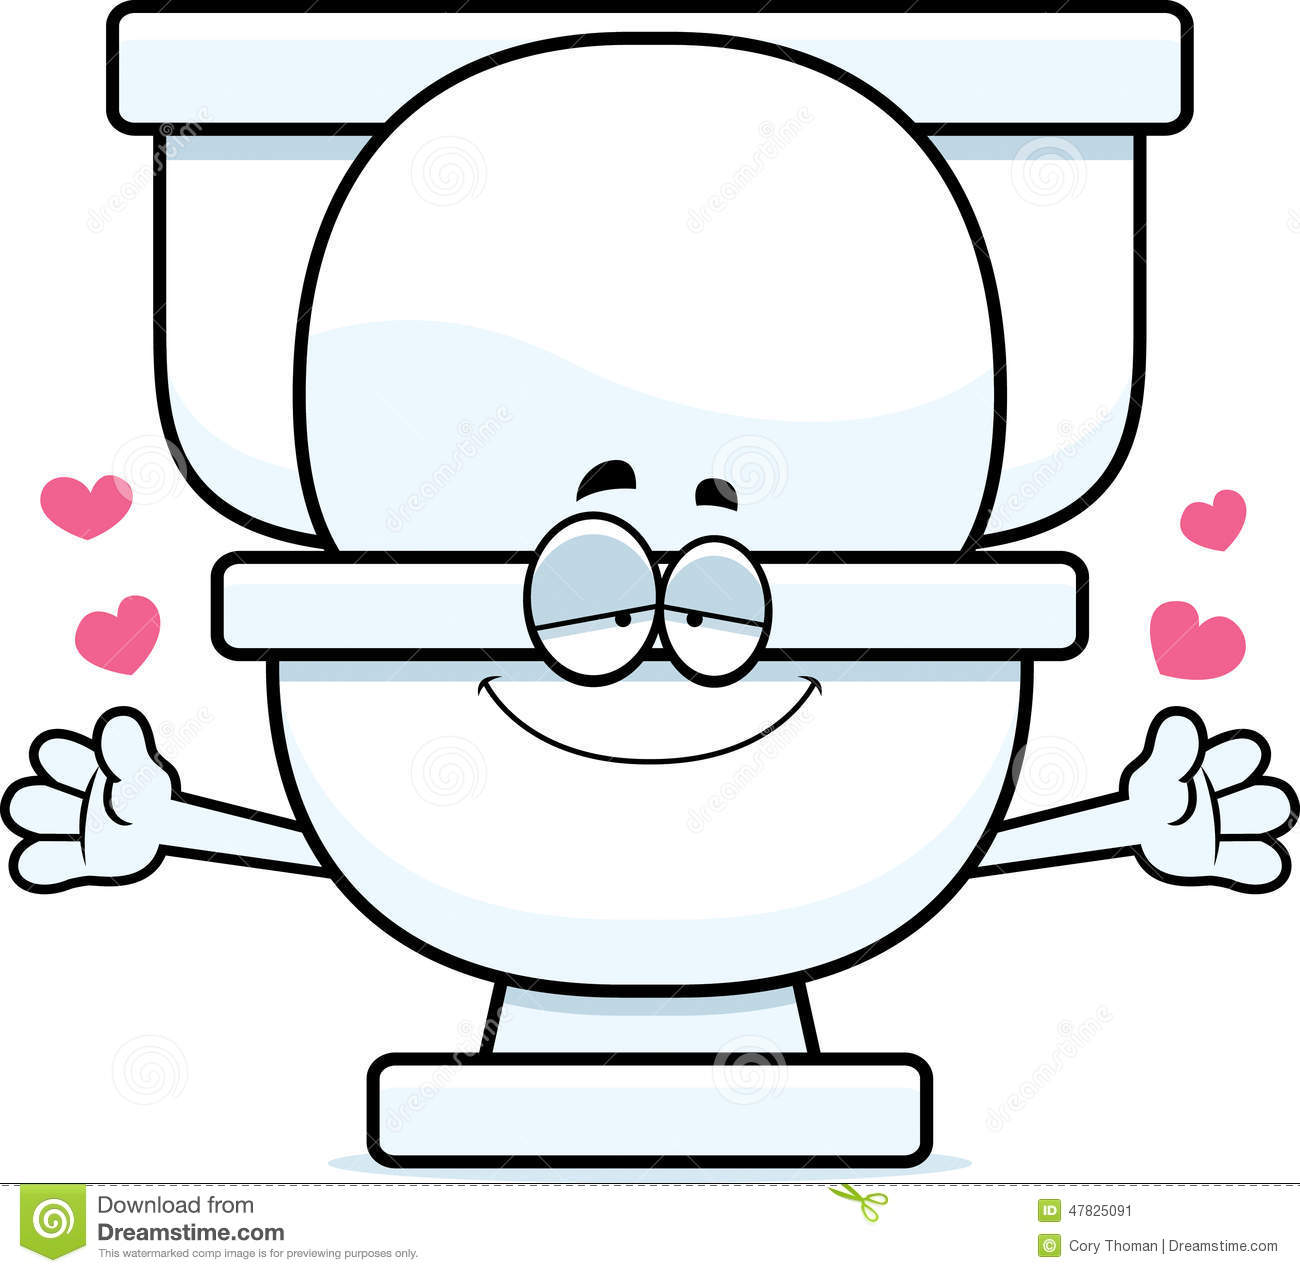 Cartoon Toilet Hug Stock Vector Image 47825091